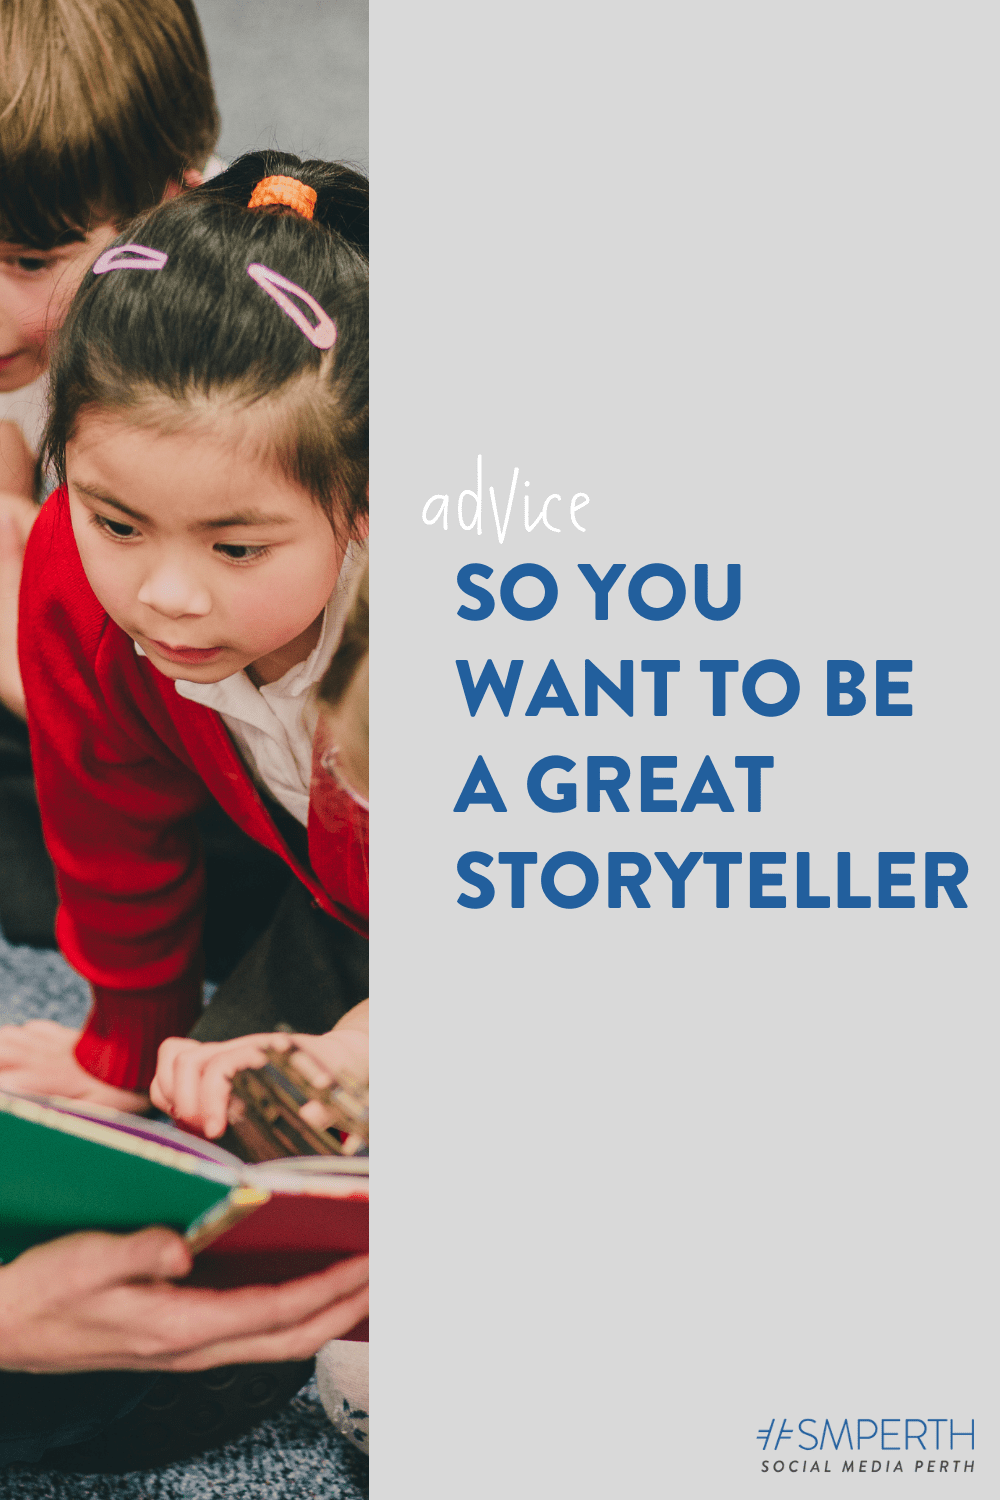 So you want to be a great storyteller...